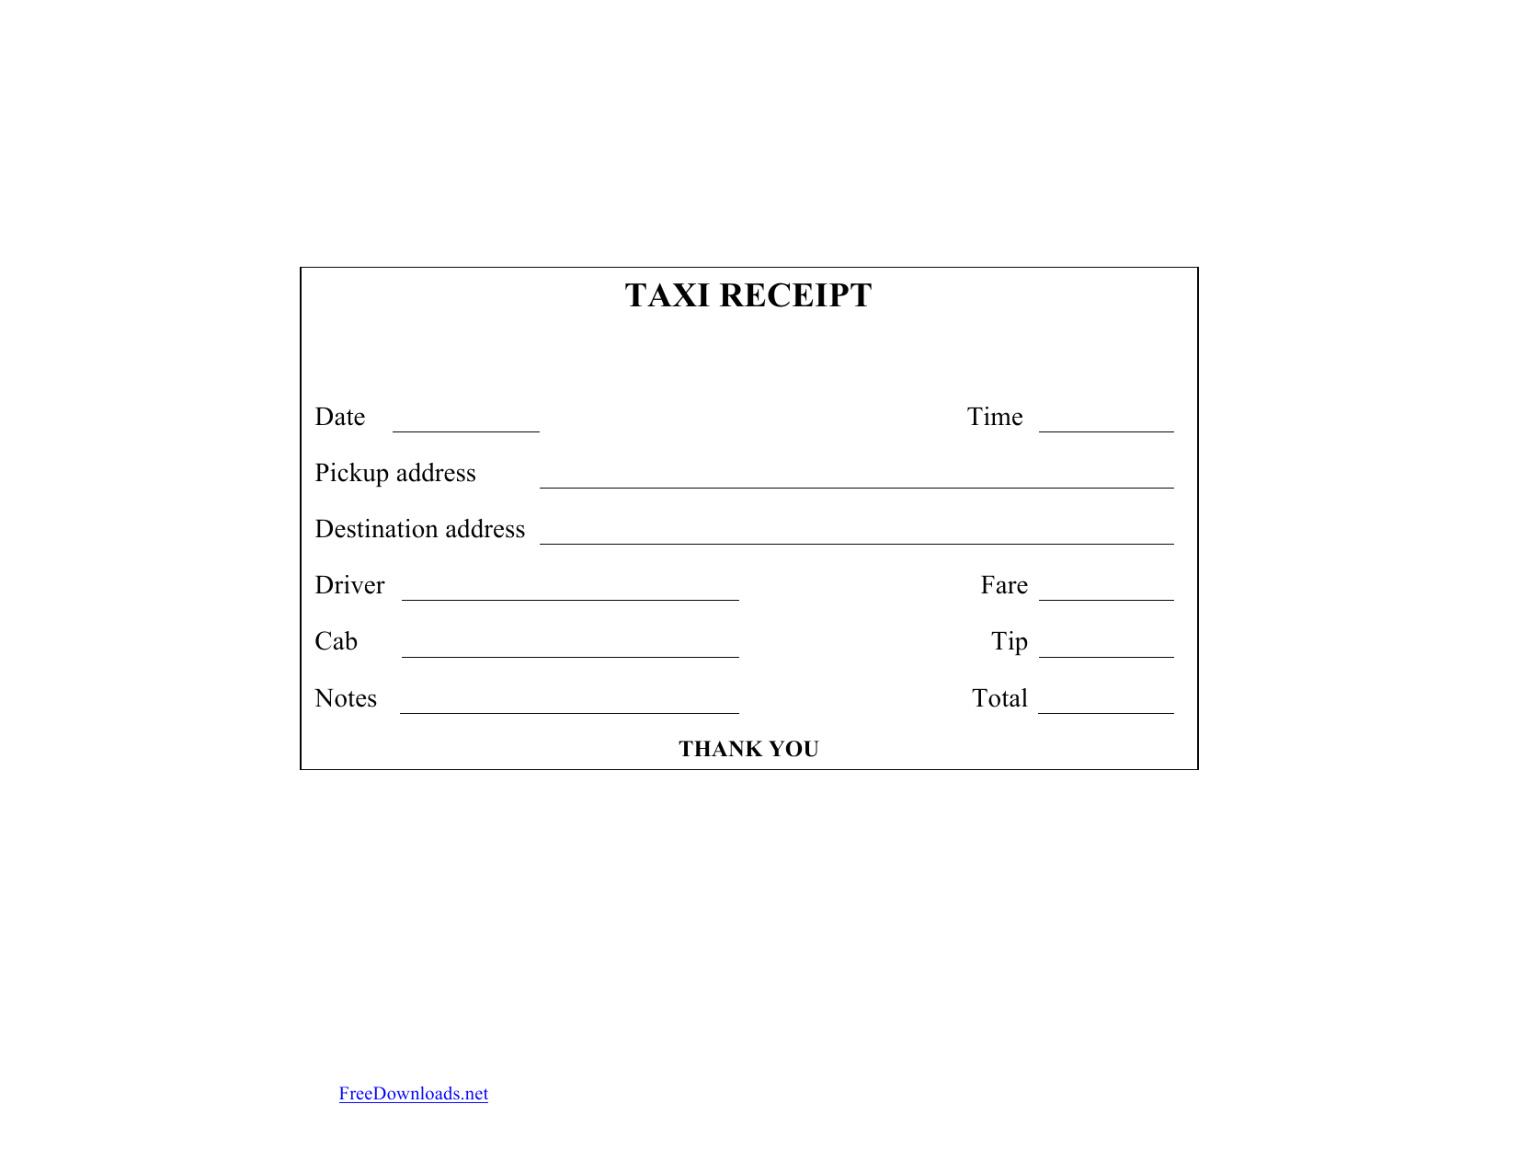 Download Blank Printable Taxi Cab Receipt Template Excel Intended For Blank Taxi Receipt Template